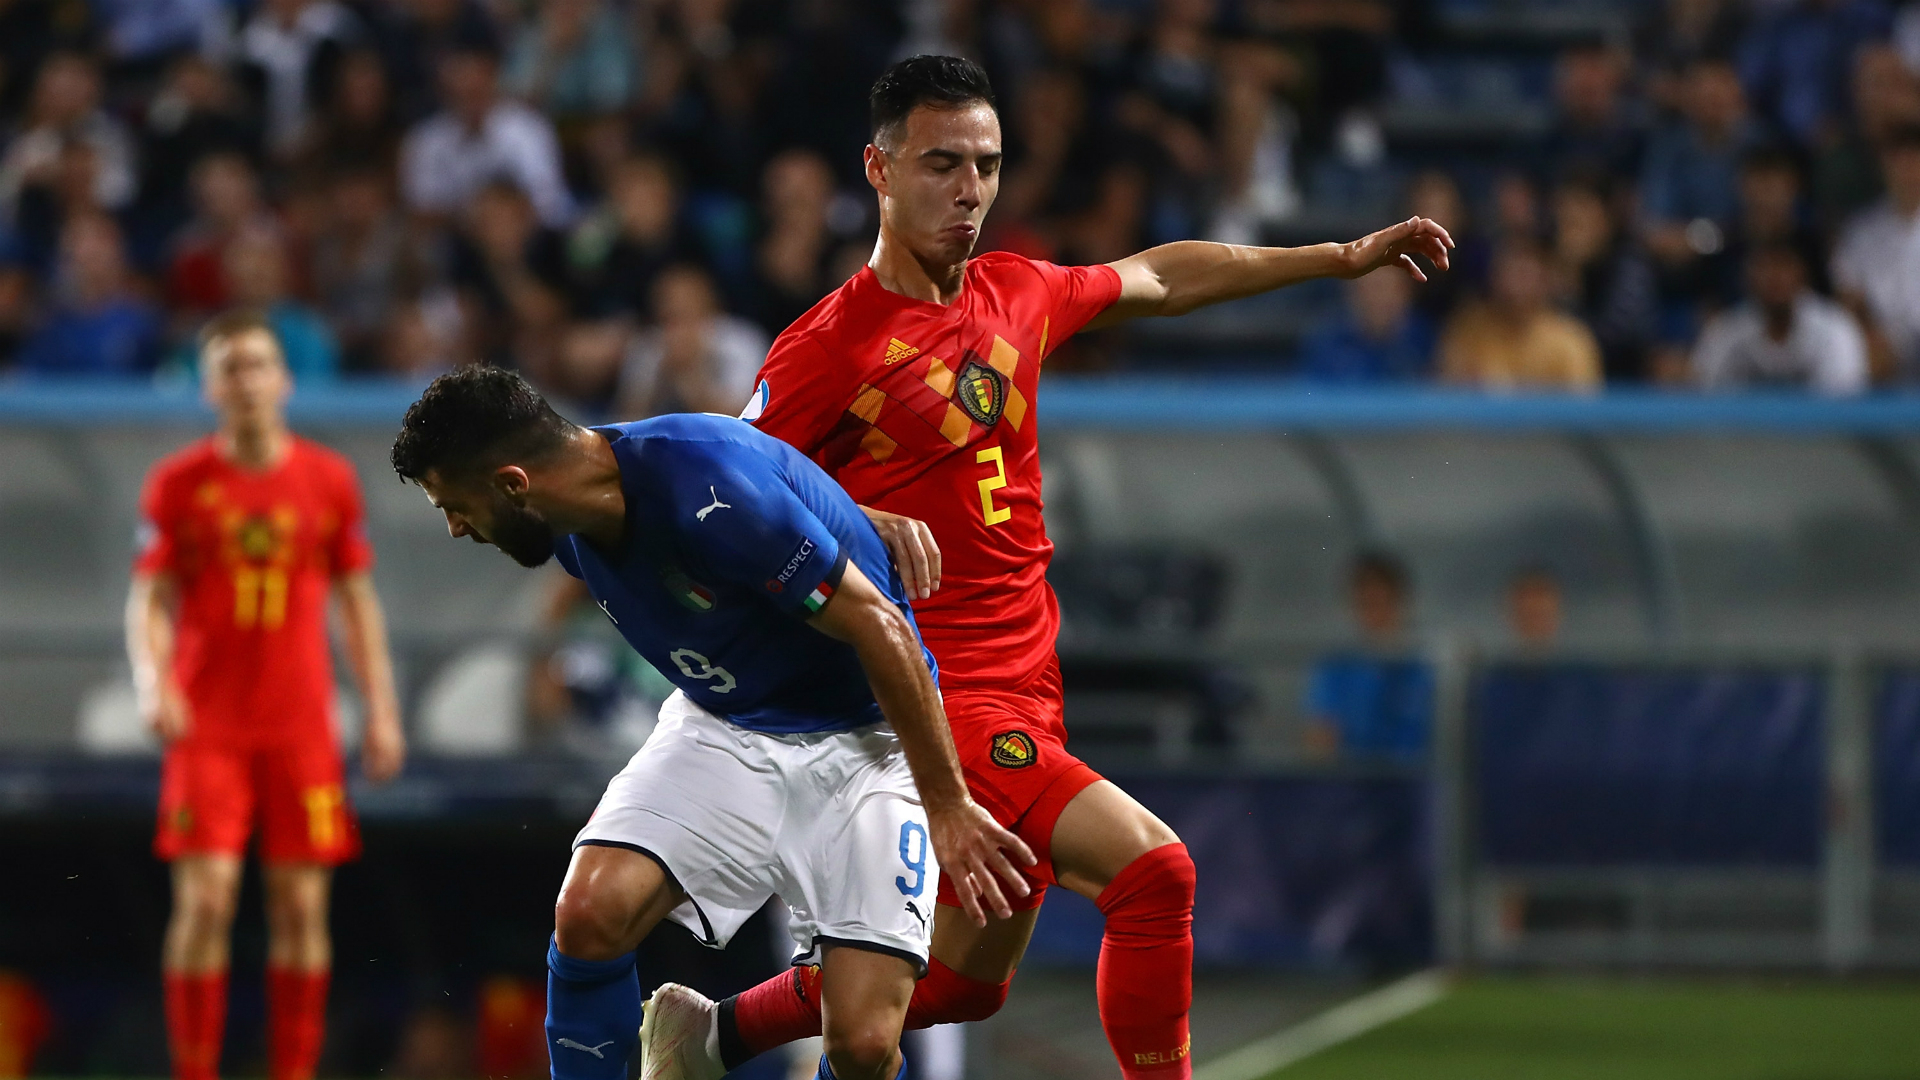 Who is Dion Cools - Meet the former Belgium Under-21 star who is eligible to represent Malaysia